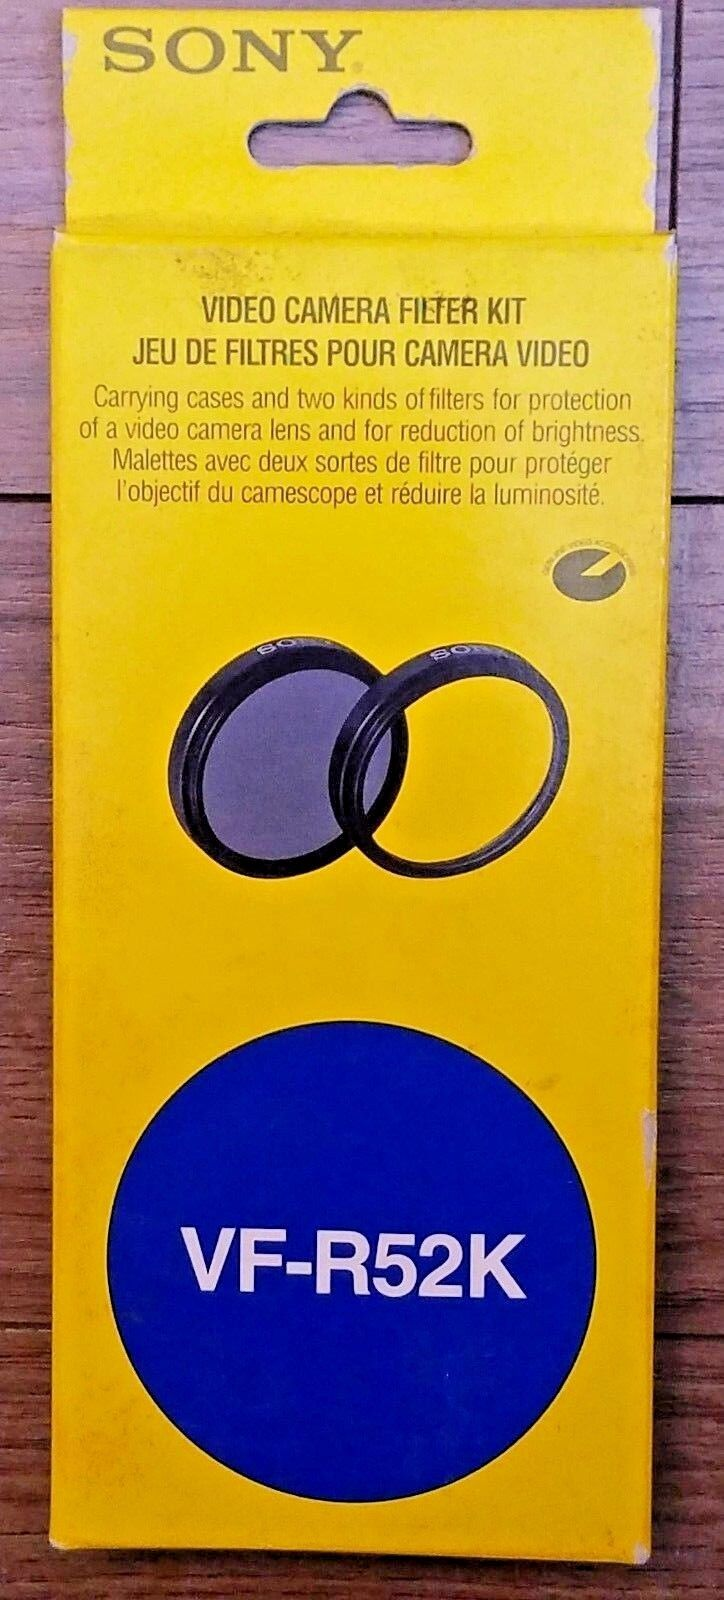 Sony filtro set ND 8 protector vf r52k 52mm